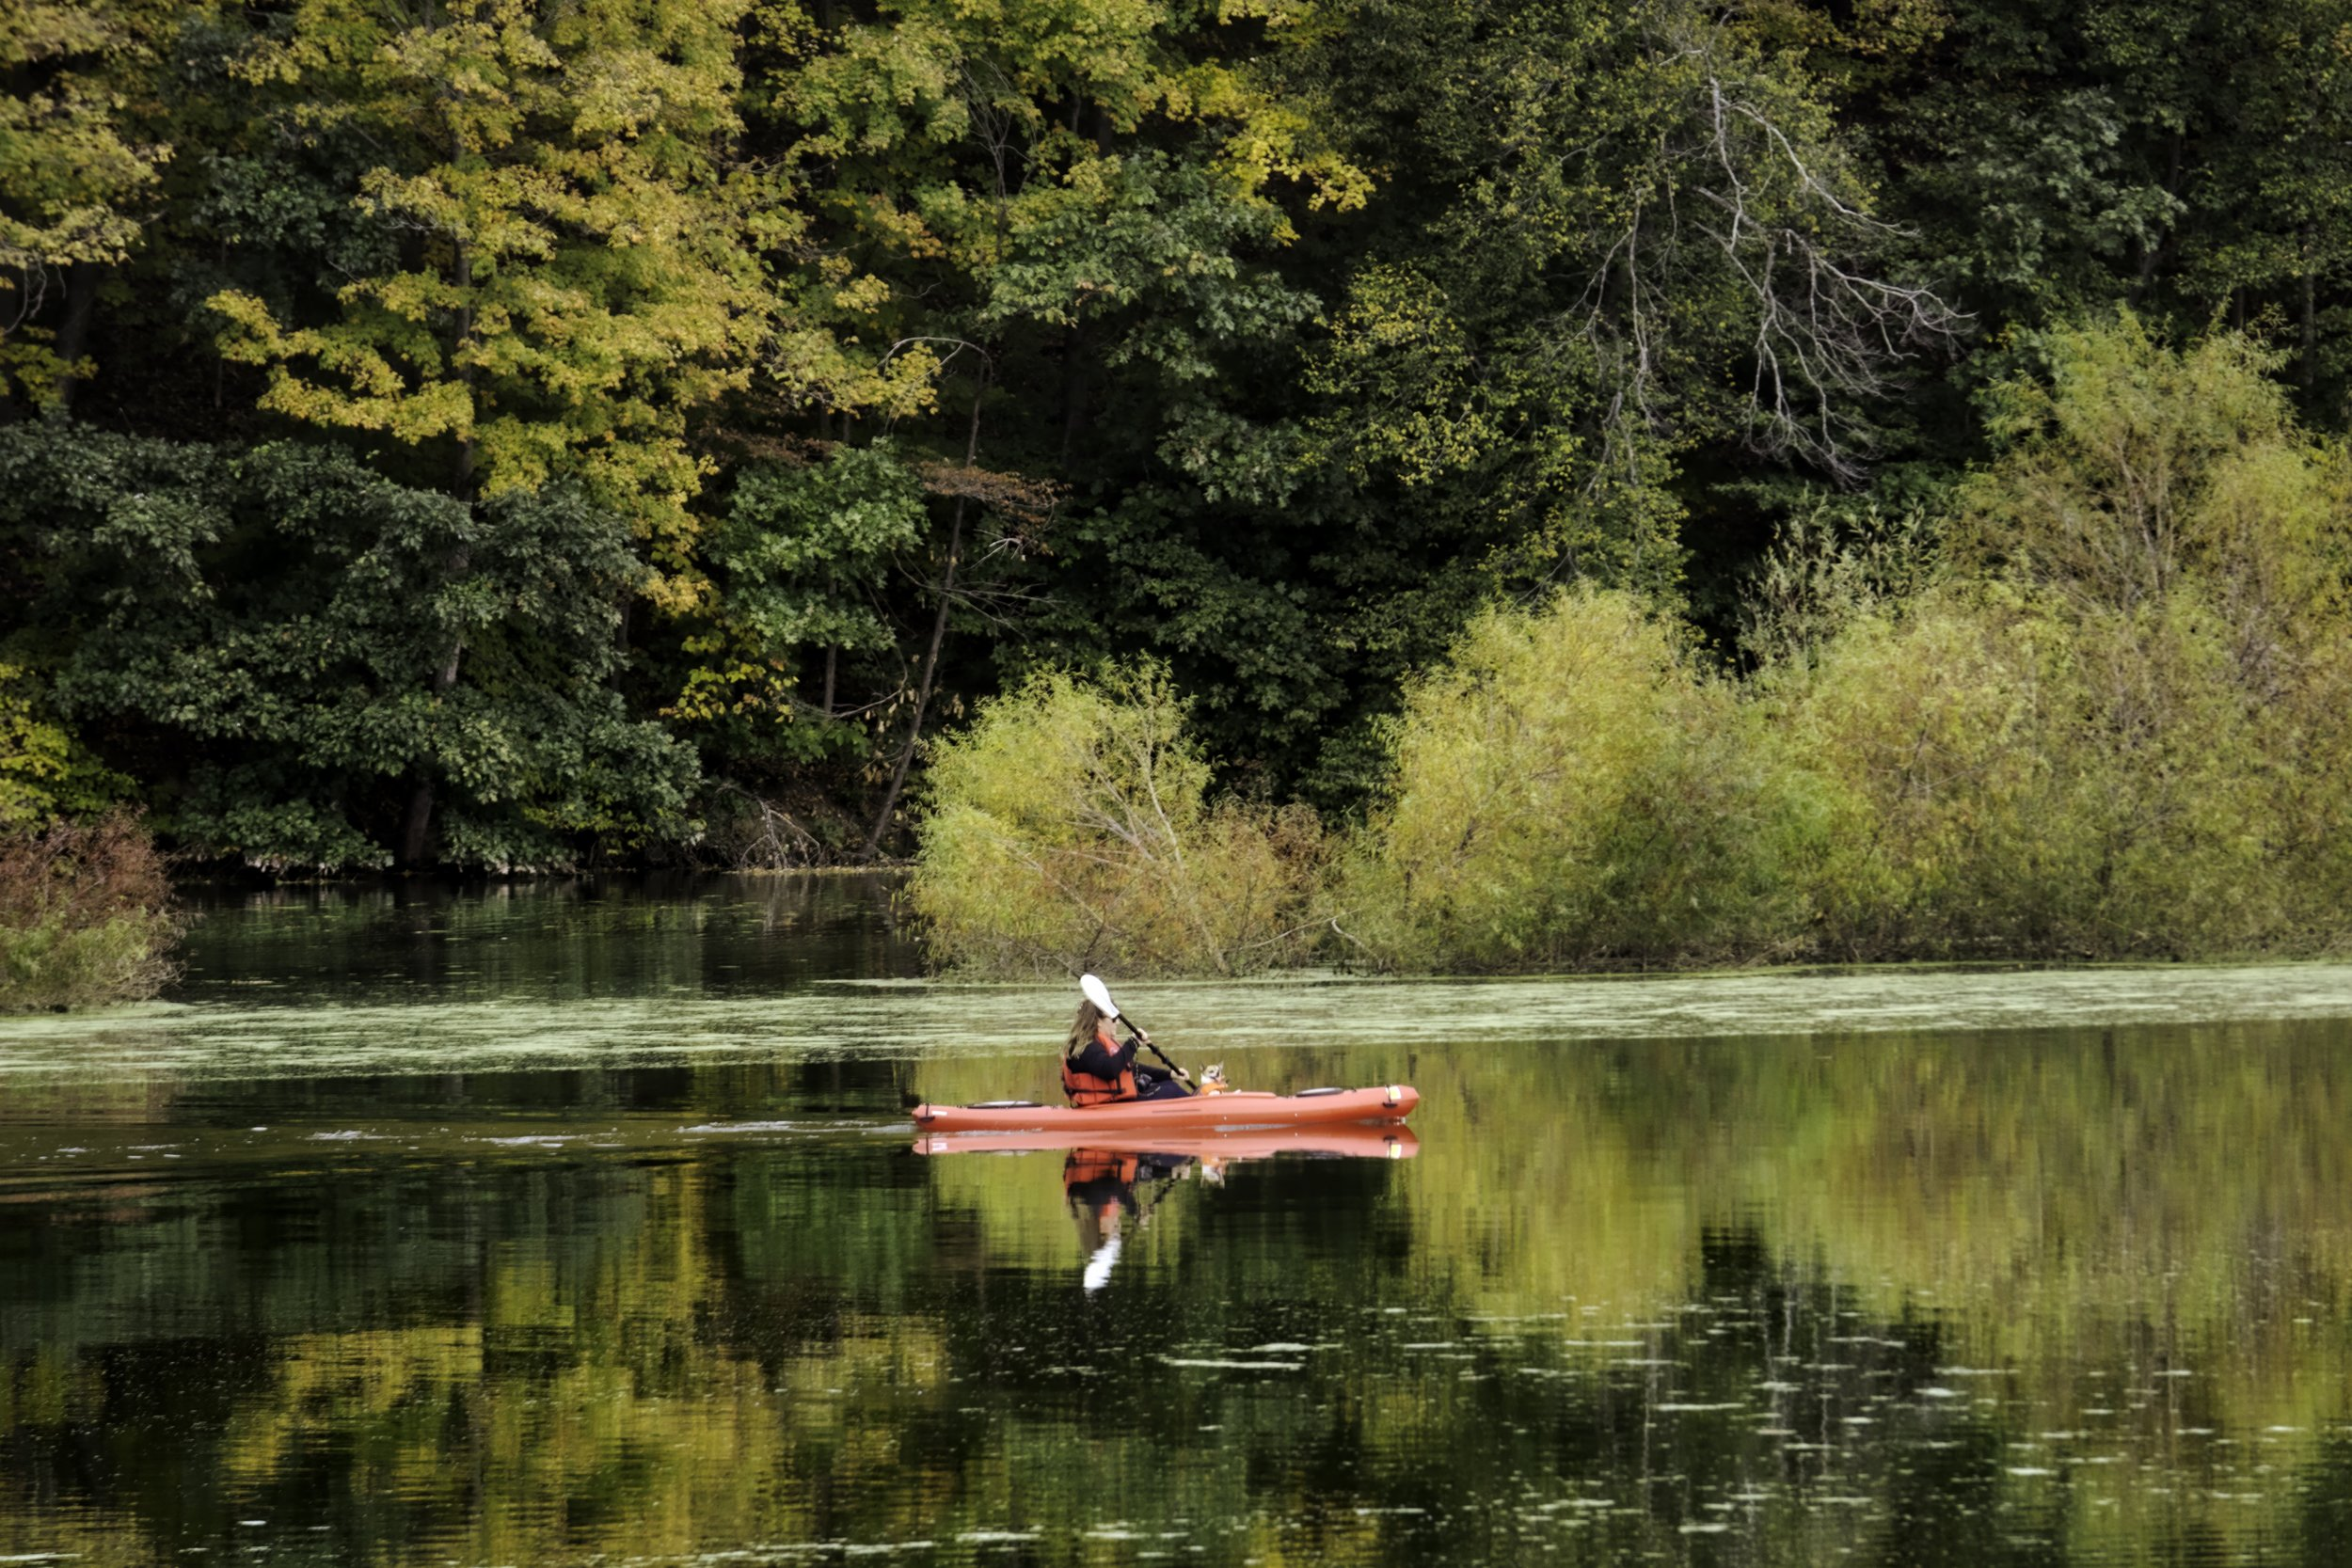 A kayaker with a furry friend taking in the view of the foliage at Speedwell Forge Lake.